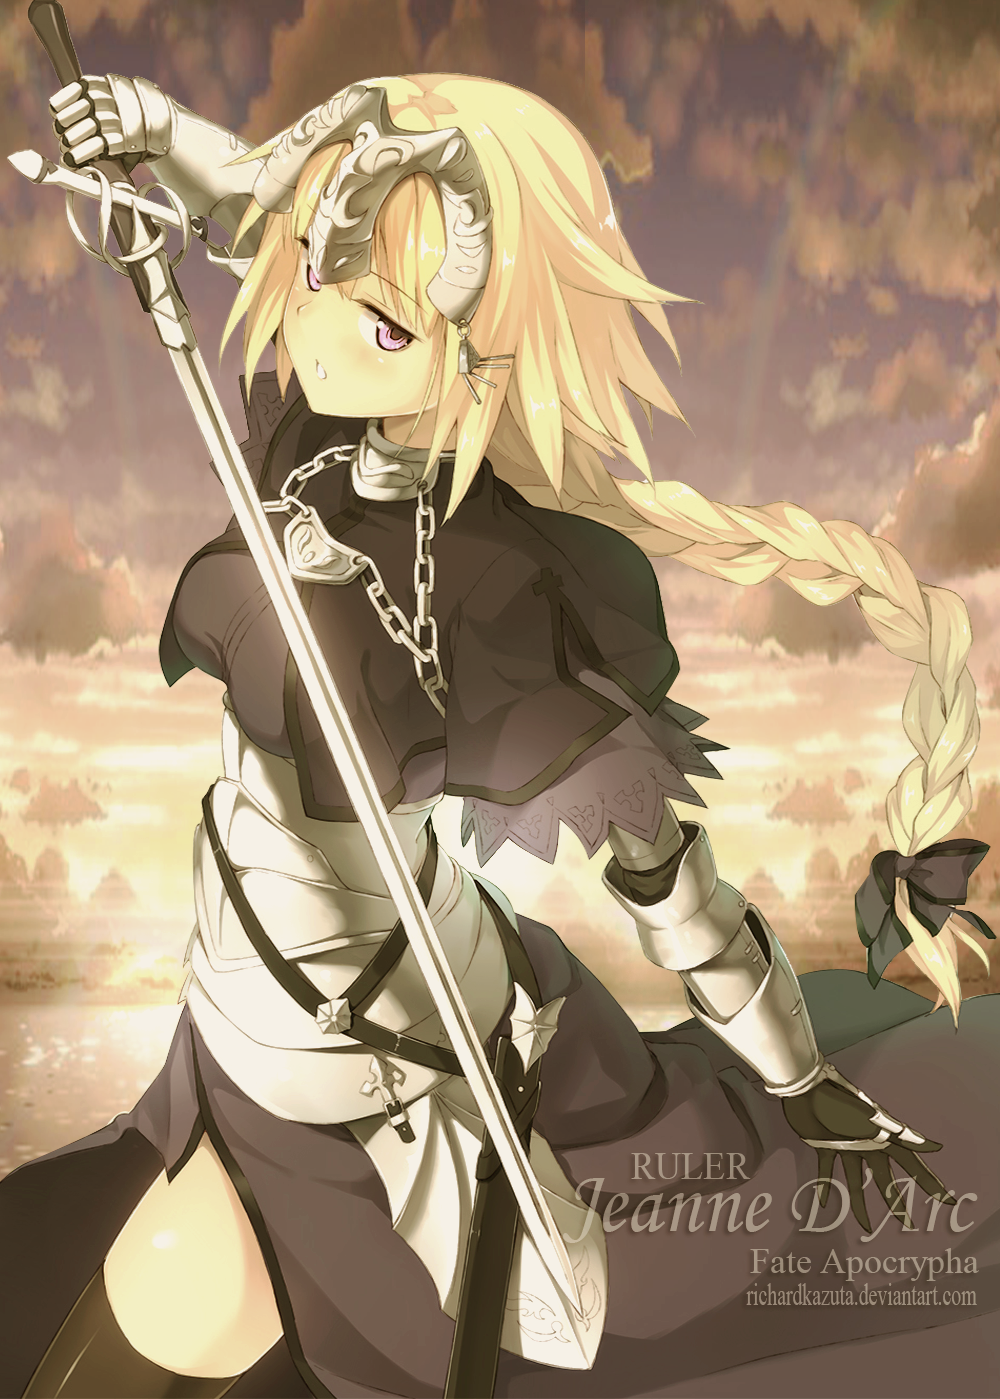 https://orig00.deviantart.net/3382/f/2016/165/8/d/jeanne_d_arc___fate_apocrypha_by_richardkazuta-da67ctl.png